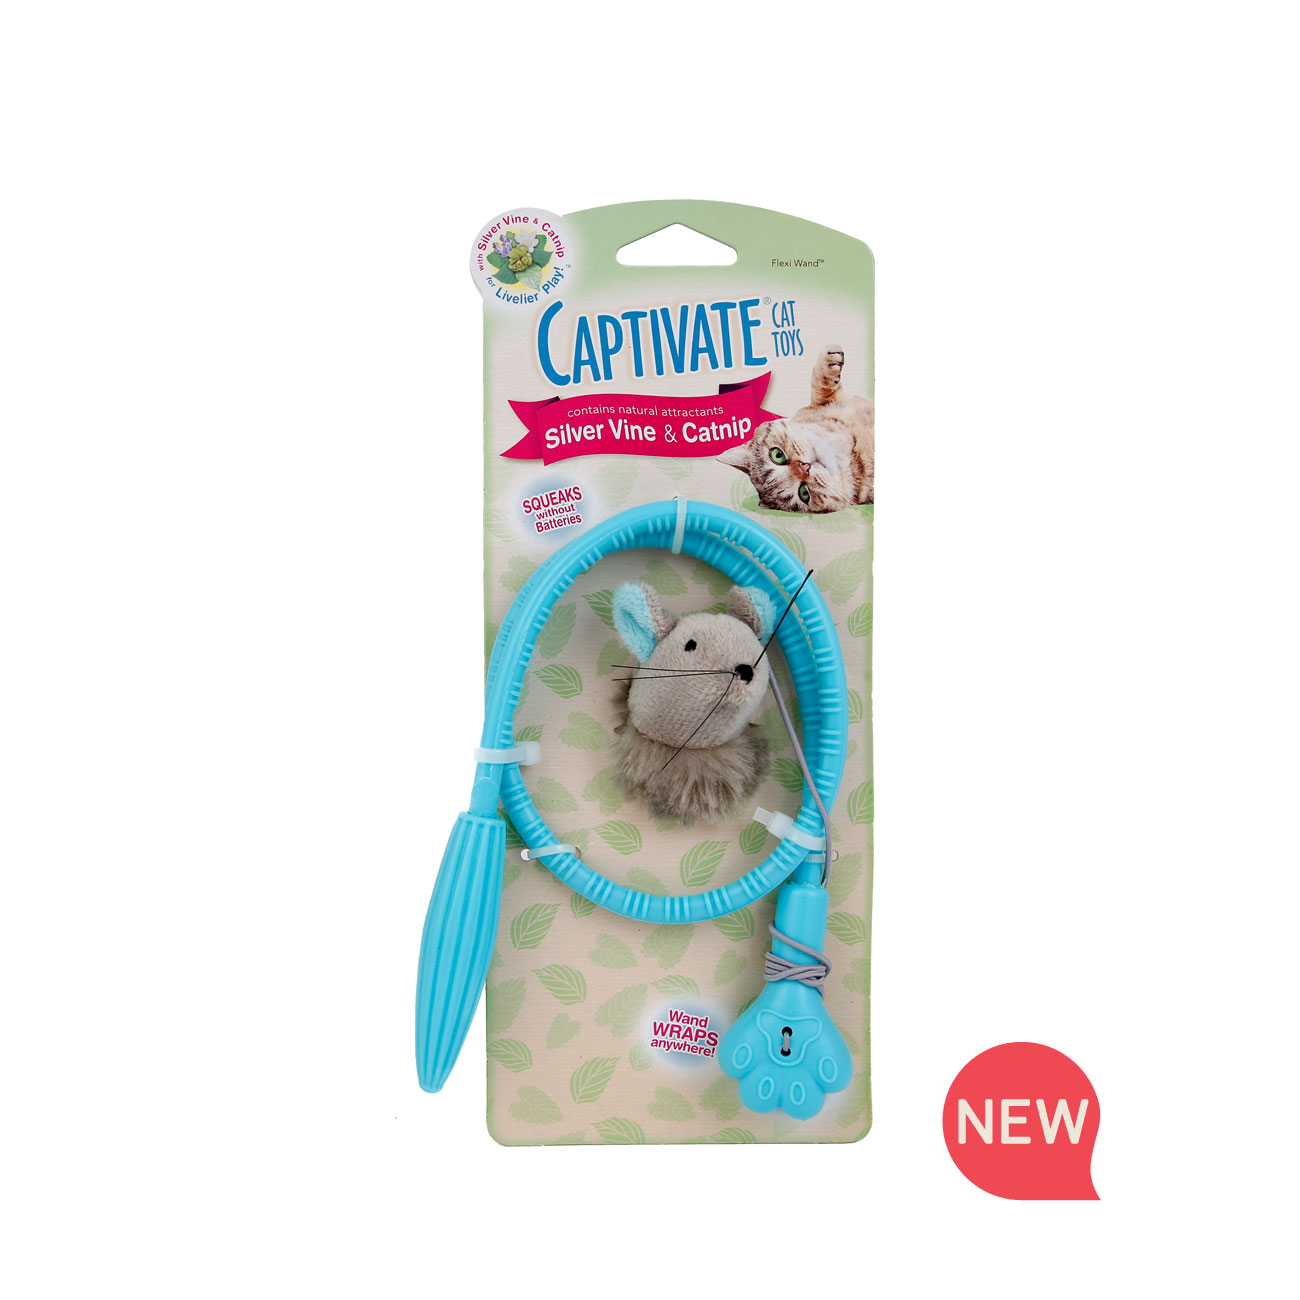 New! Hartz captivate cat toy. flexi wand cat toy with silver vine and catnip. Hartz SKU#3270011259